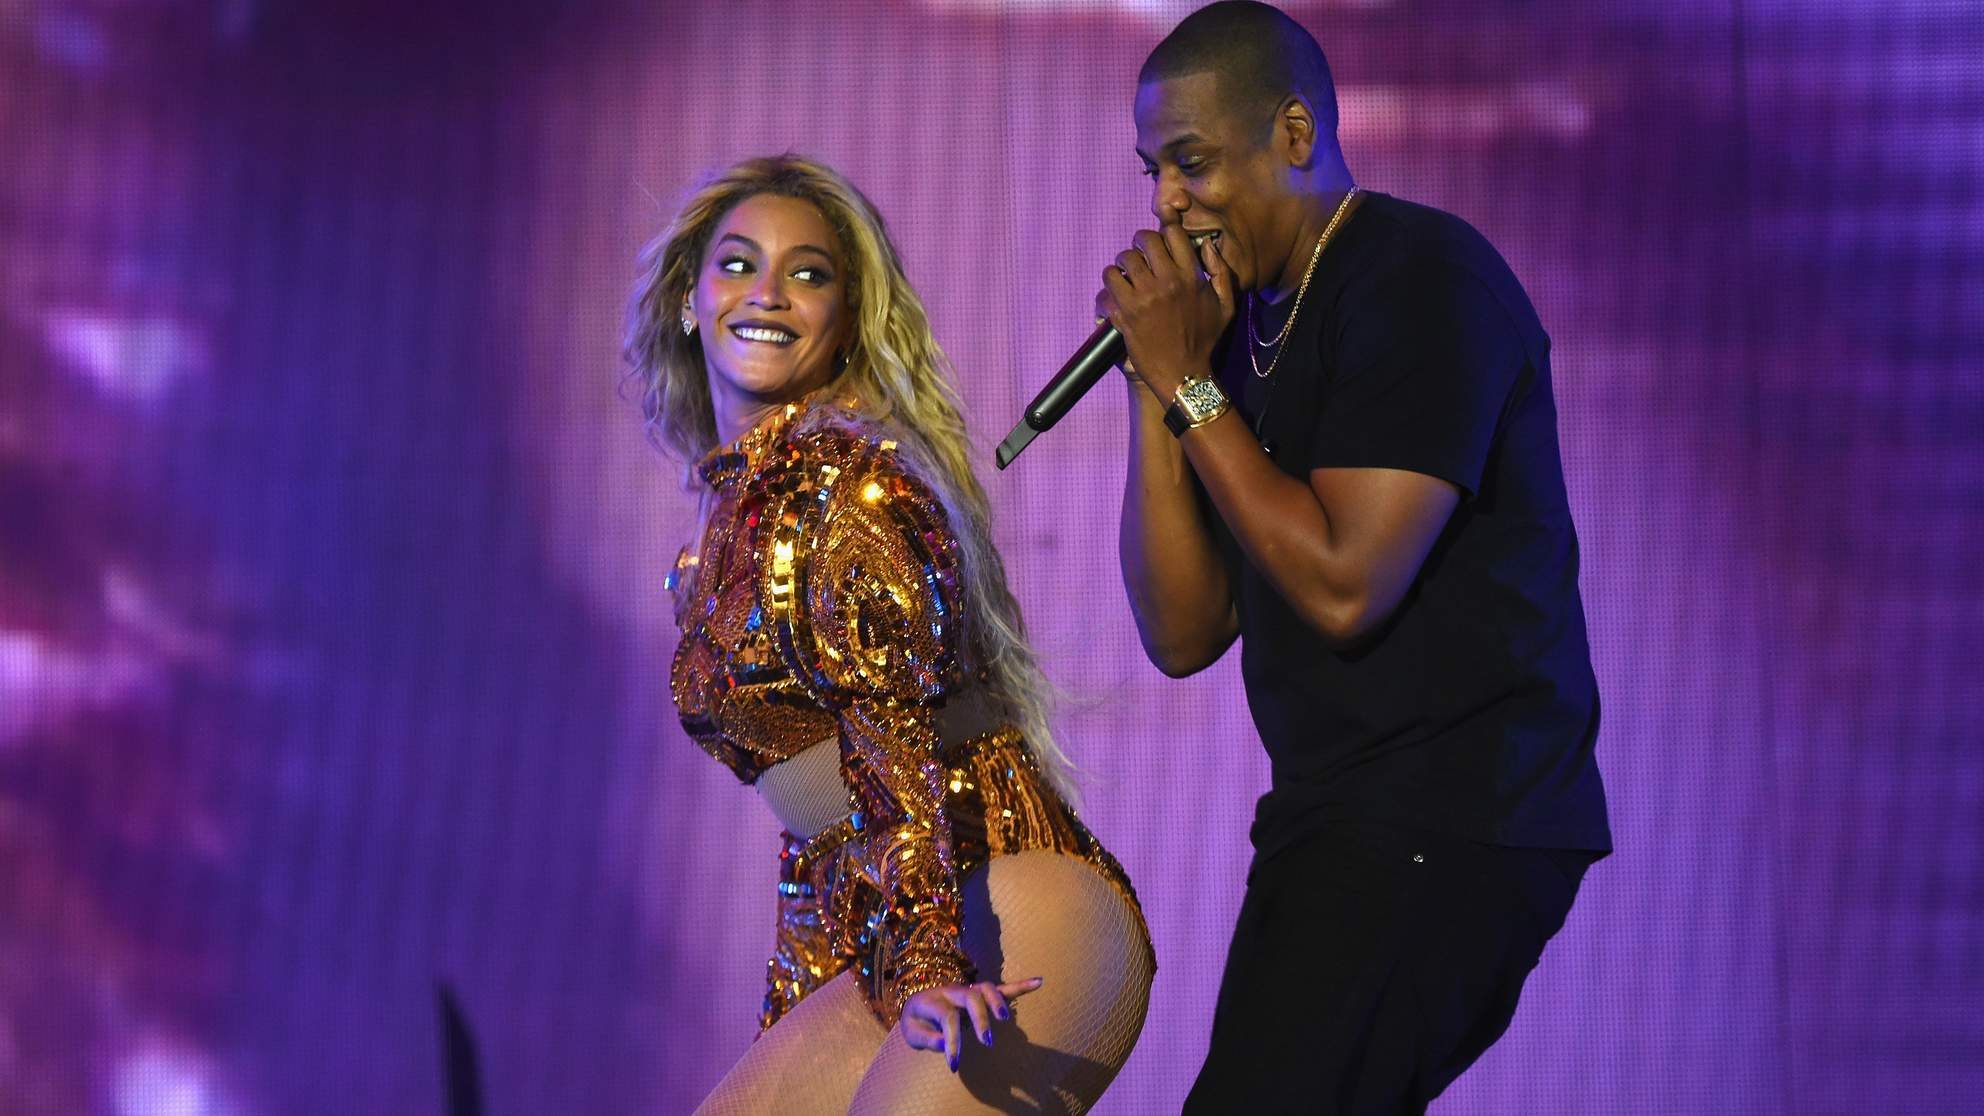 Beyoncé Struggled to Trust JAY-Z After Cheating, Says Source: 'If It Wasn't for Blue Ivy, They Might Not Be Together'